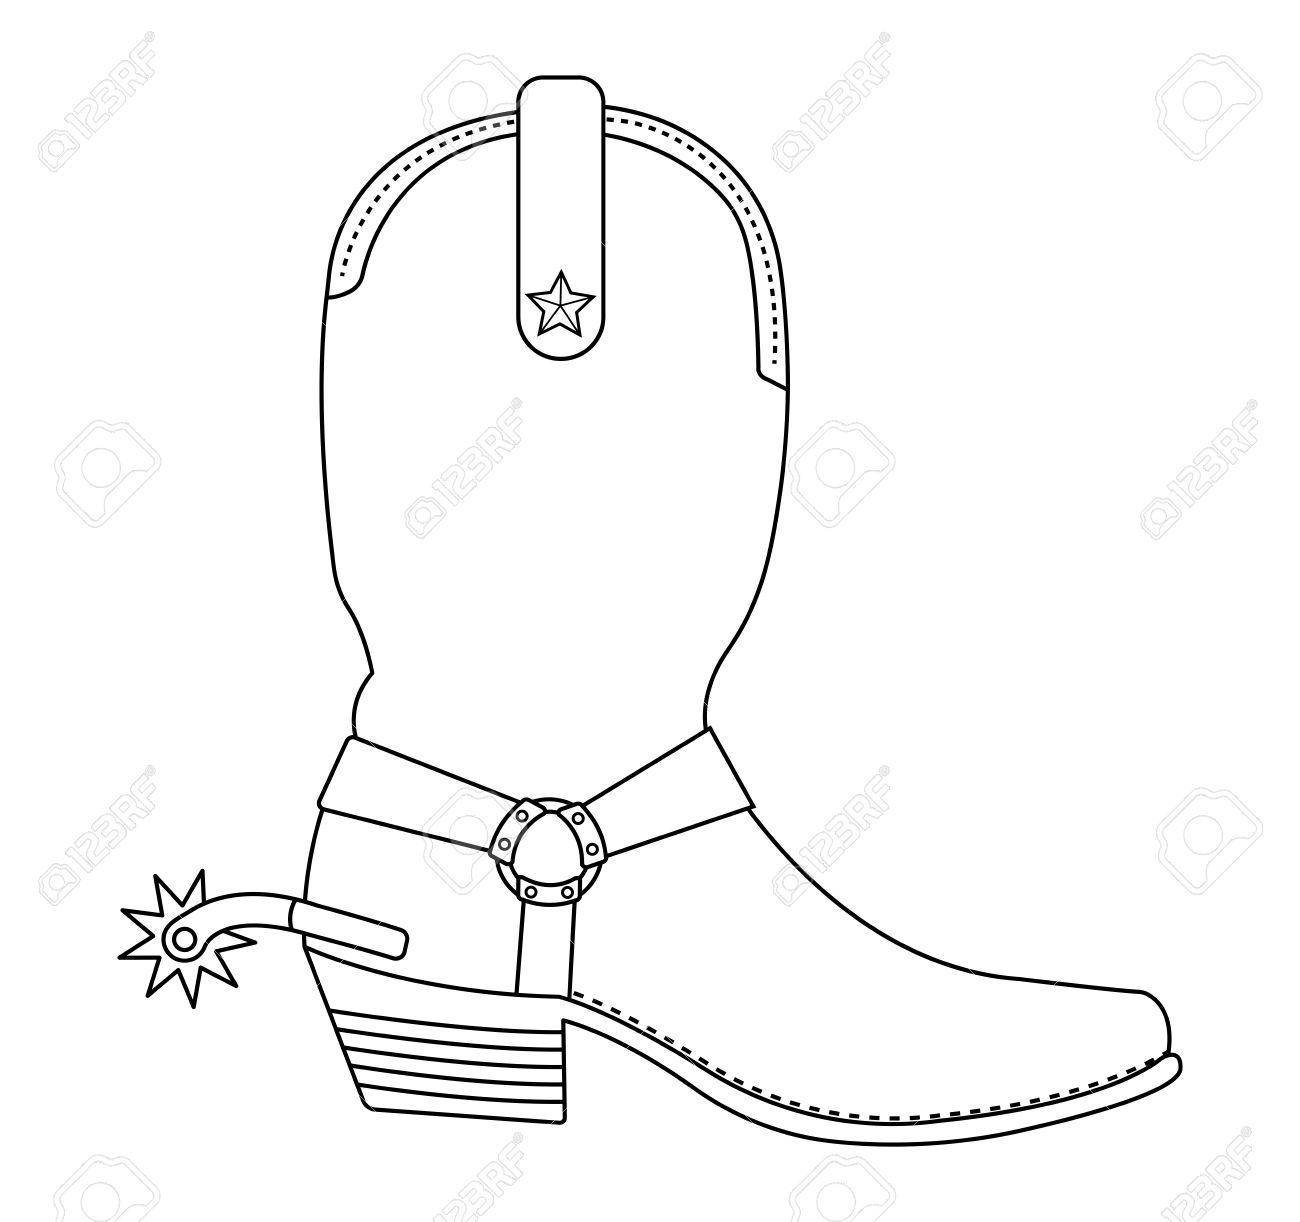 Free Western Boot Cliparts, Download Free Clip Art, Free Clip Art on.